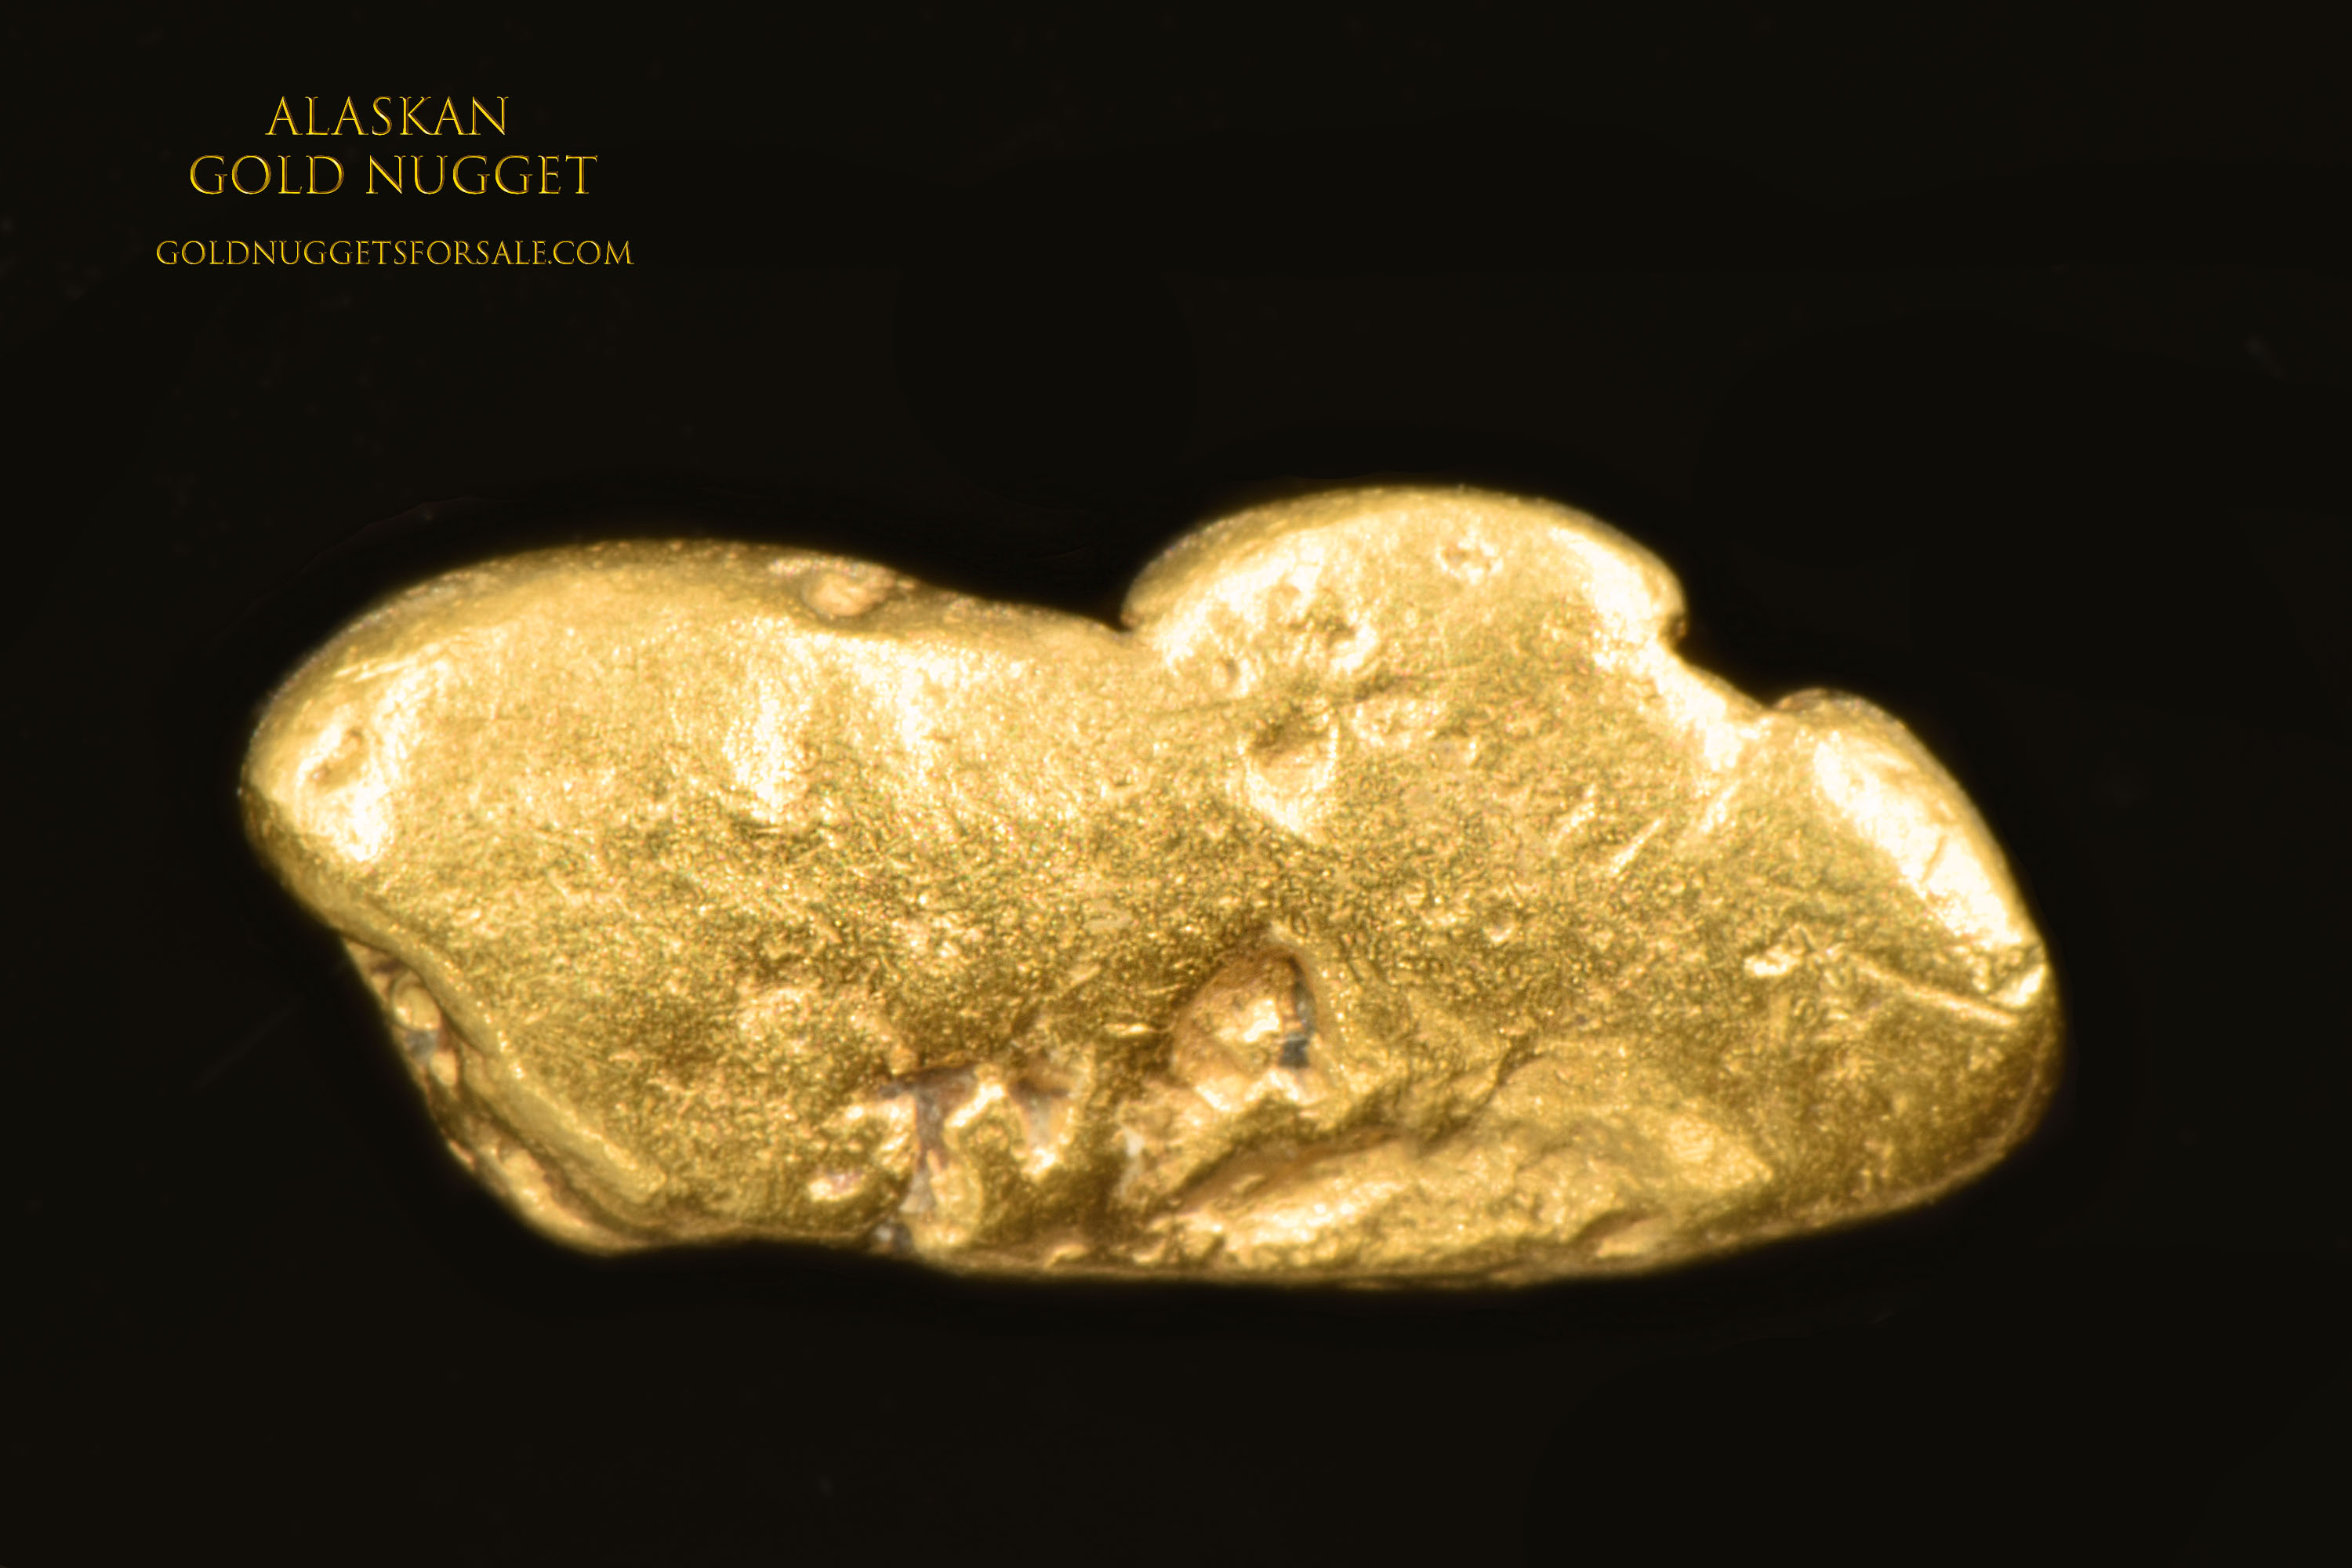 Jewelry Grade Alaskan Gold Nugget For Under $50.